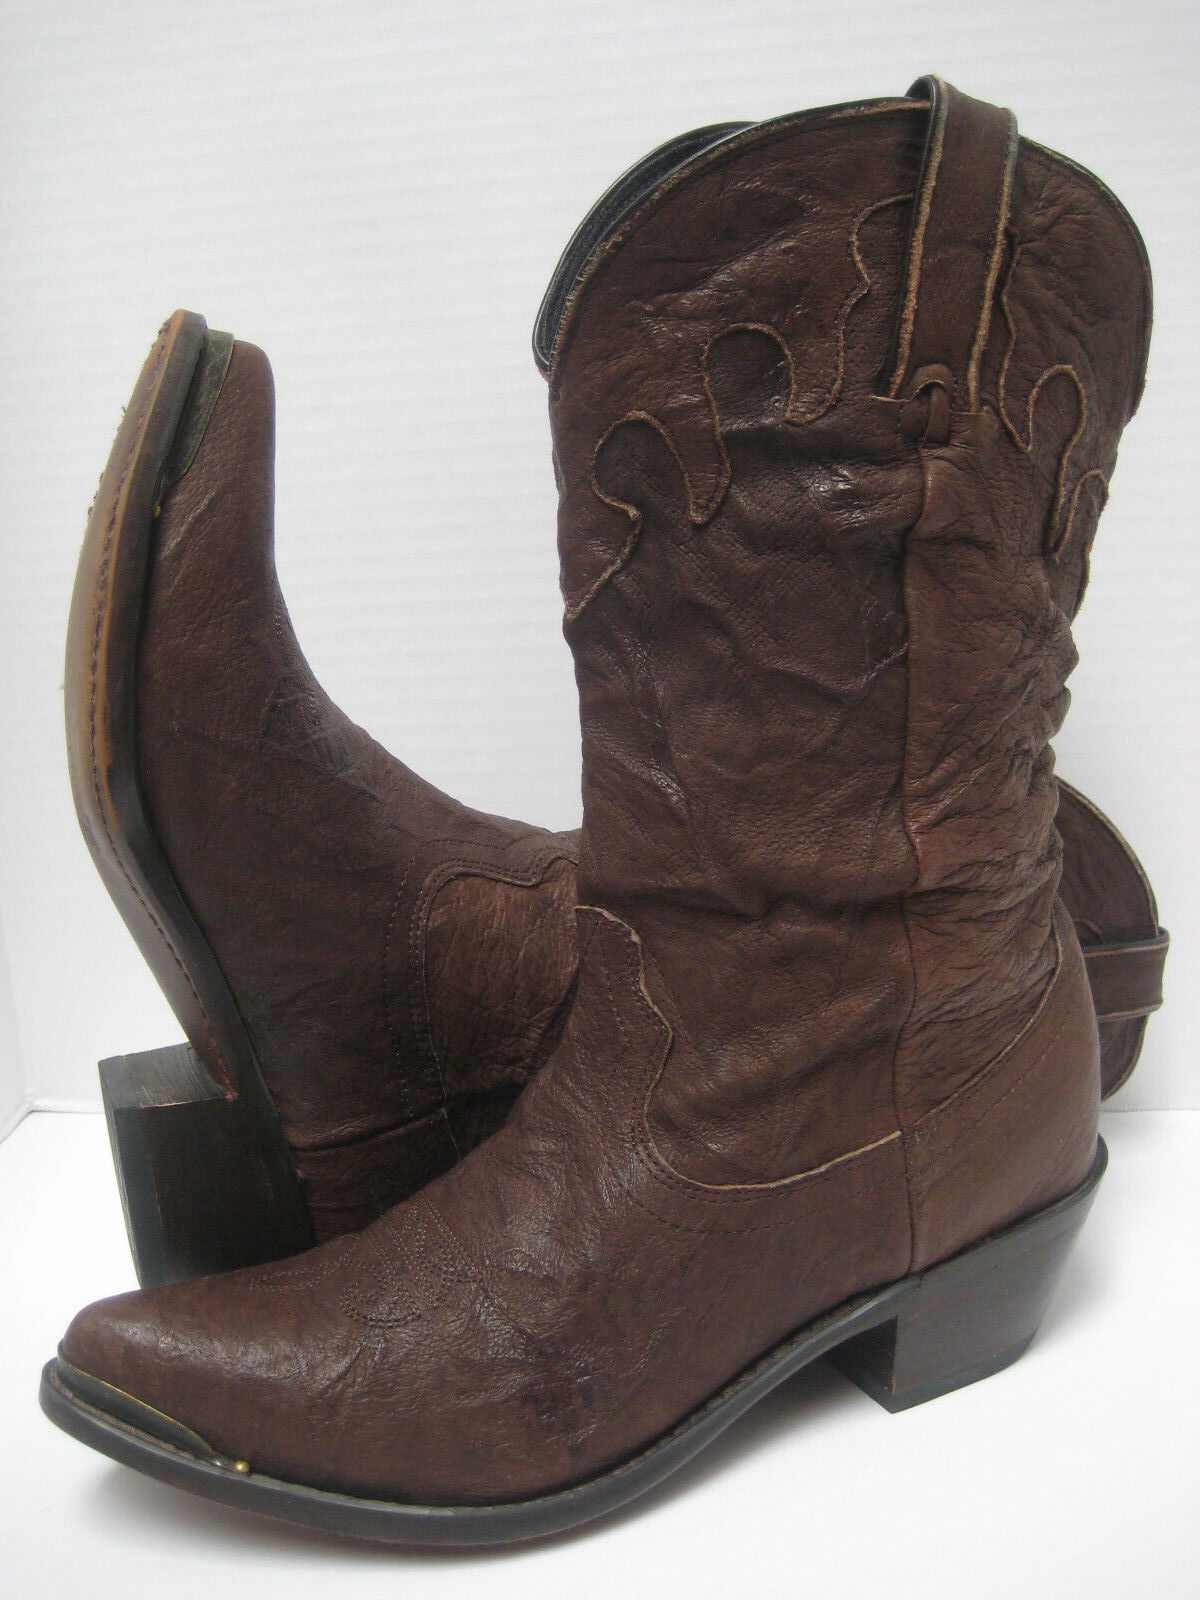 DURANGO Women BROWN SOFT CRINKLED LEATHER Slouchy Western BOOTS  Sweet Pair  6M